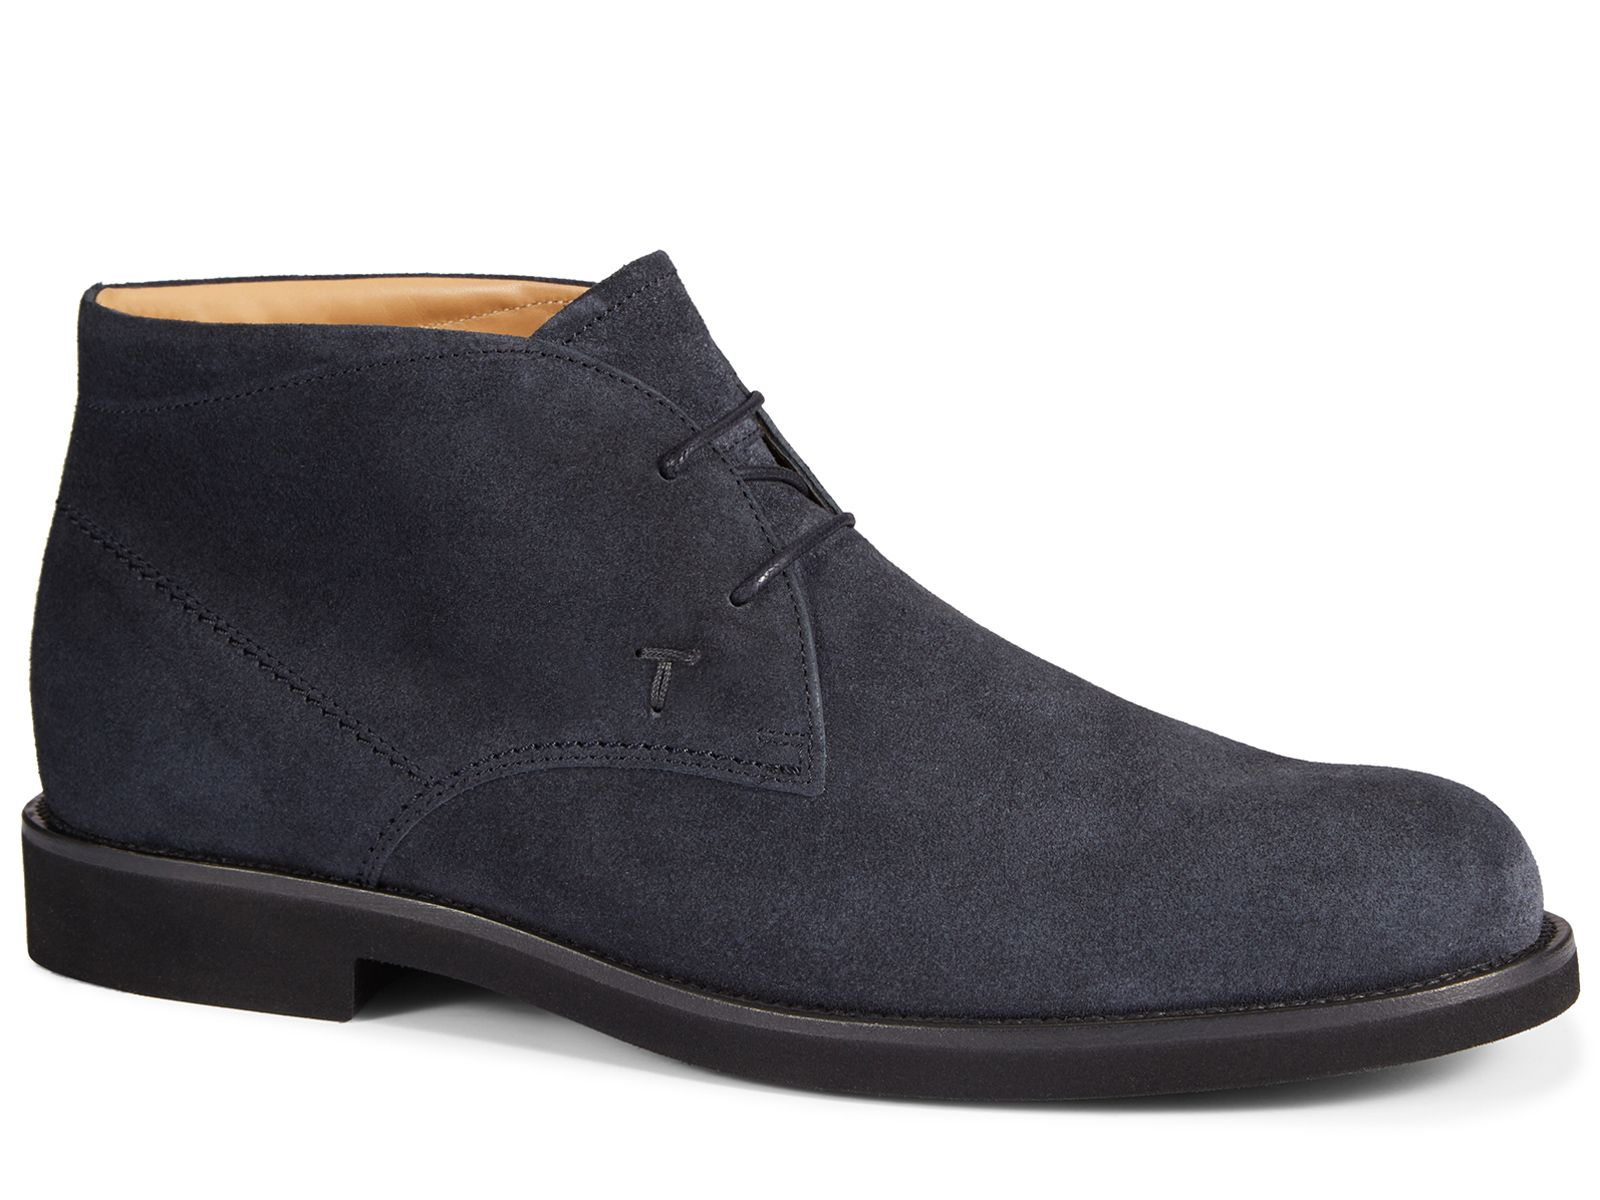 dc36765ea3e Tod s men s ankle boots in blue Suede leather